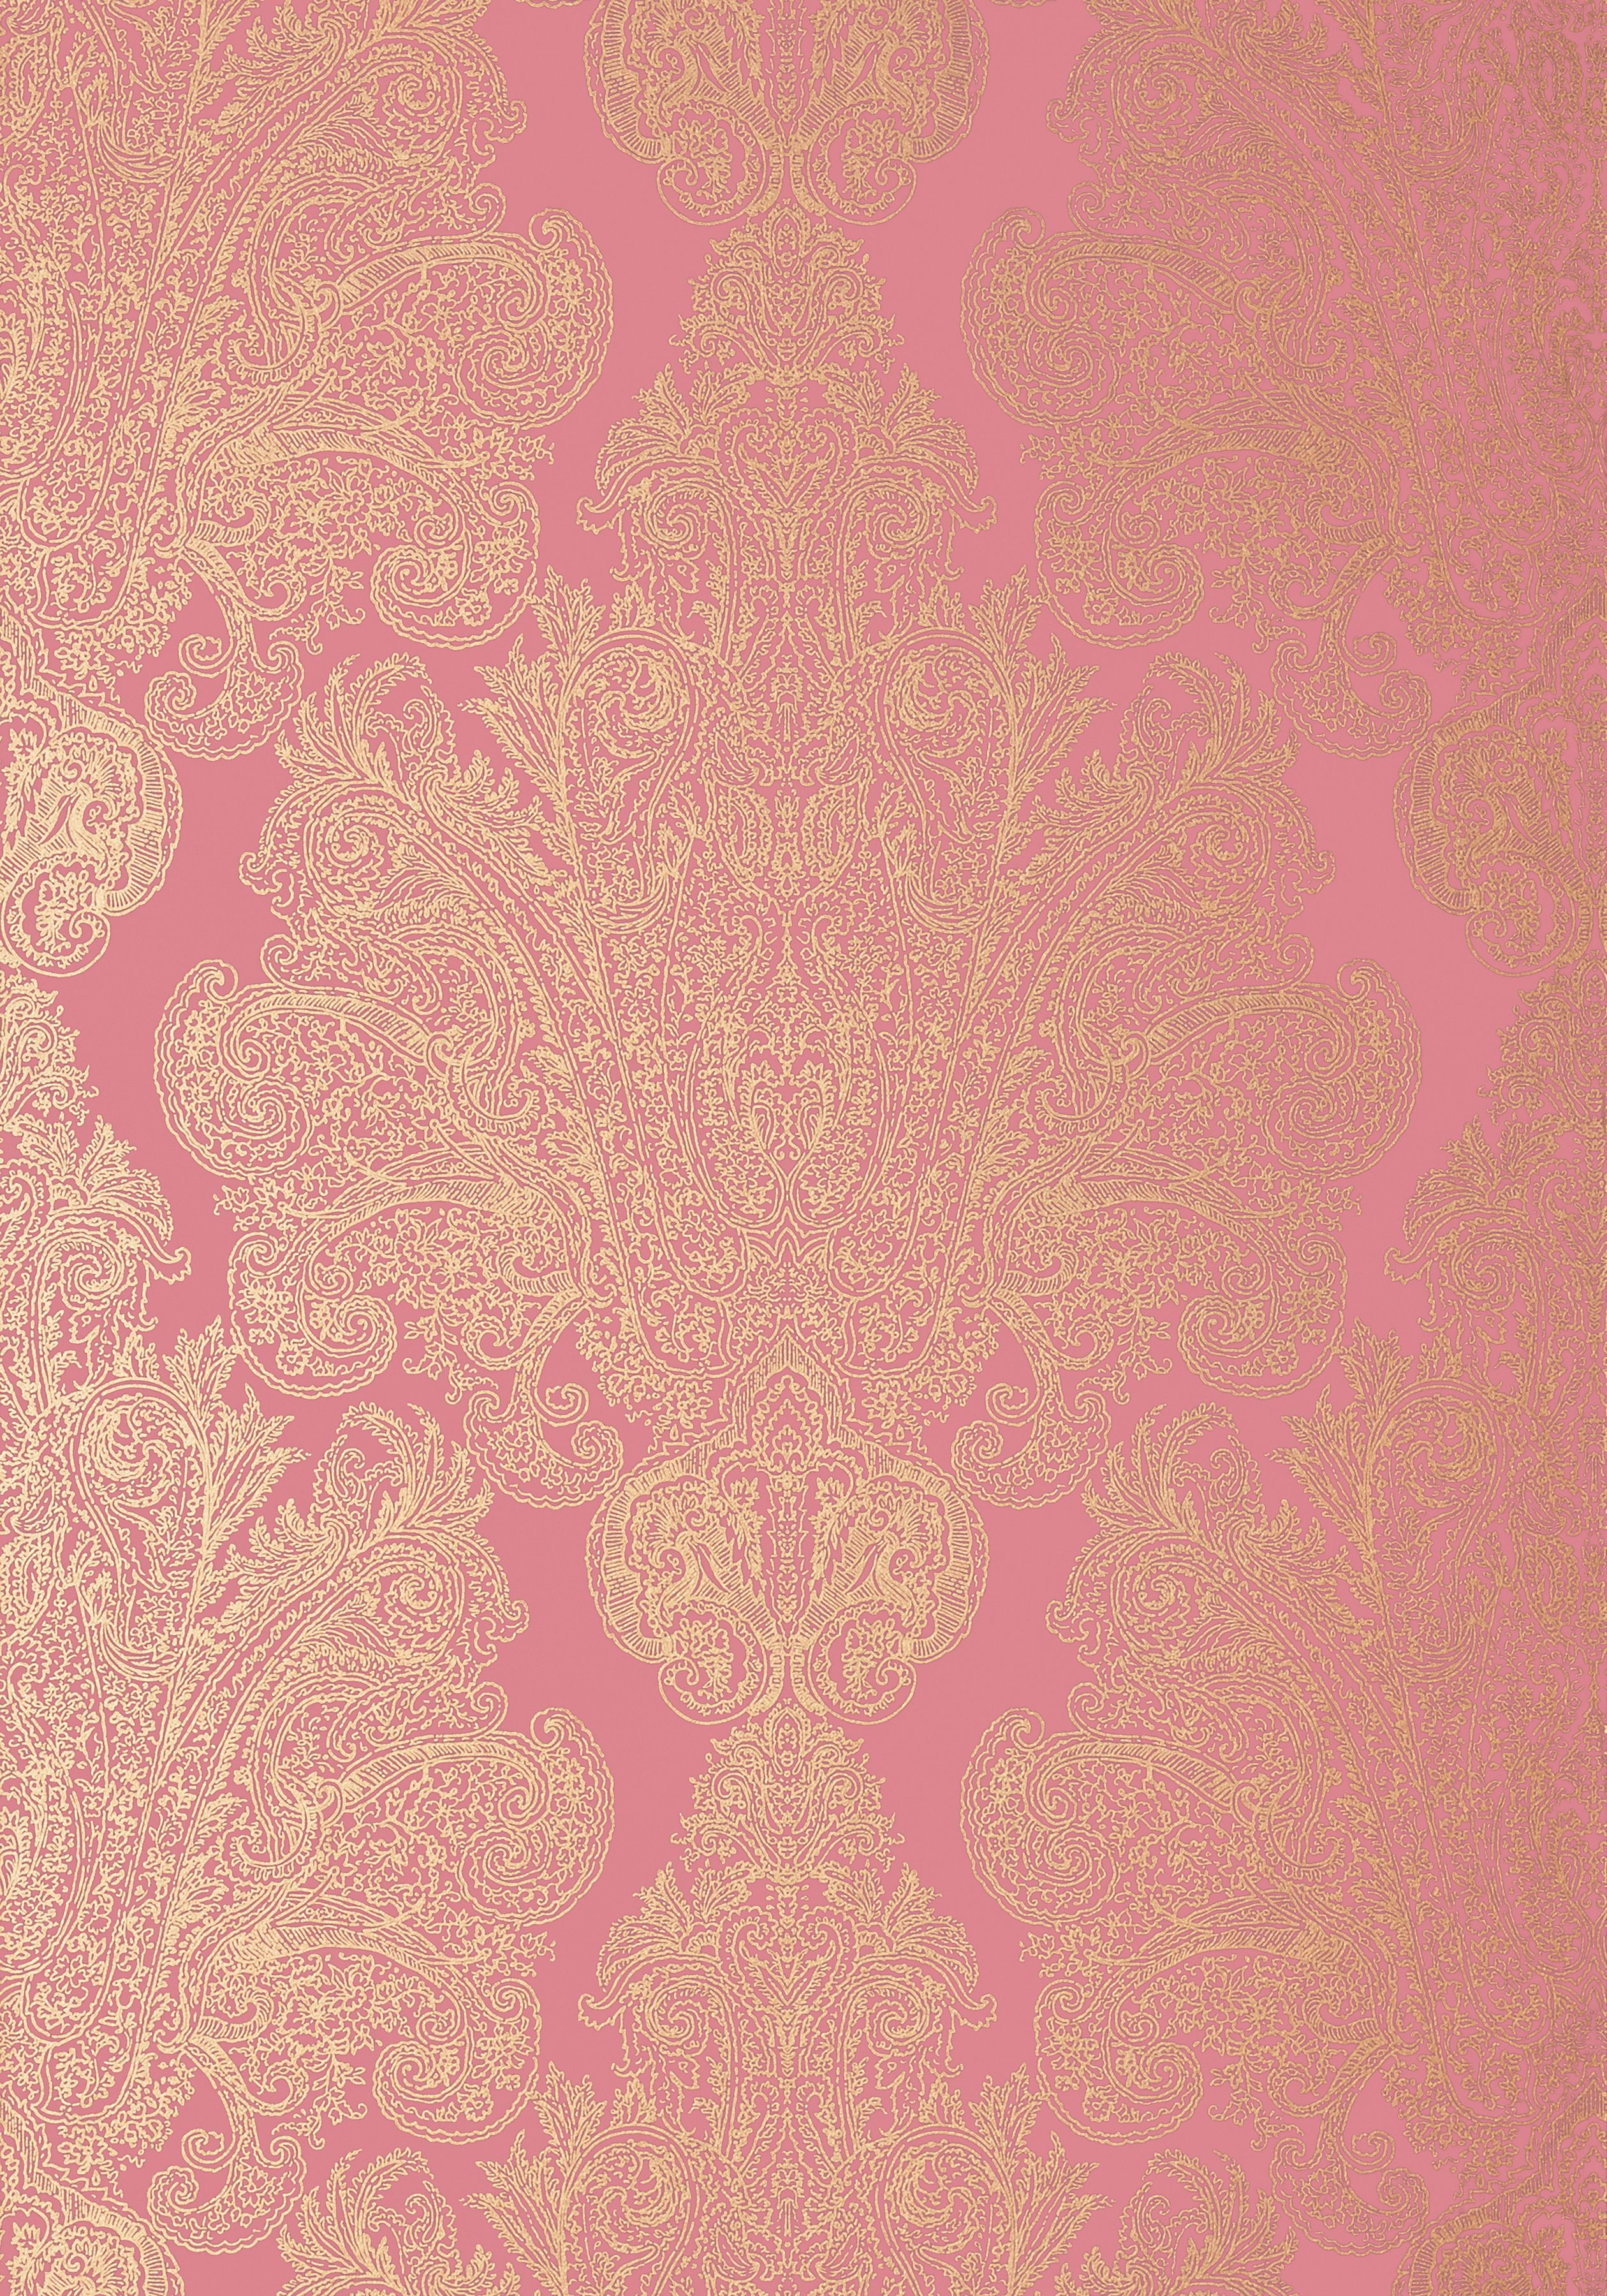 AUBURN, Metallic Gold on Pink, AT6103, Collection Serenade